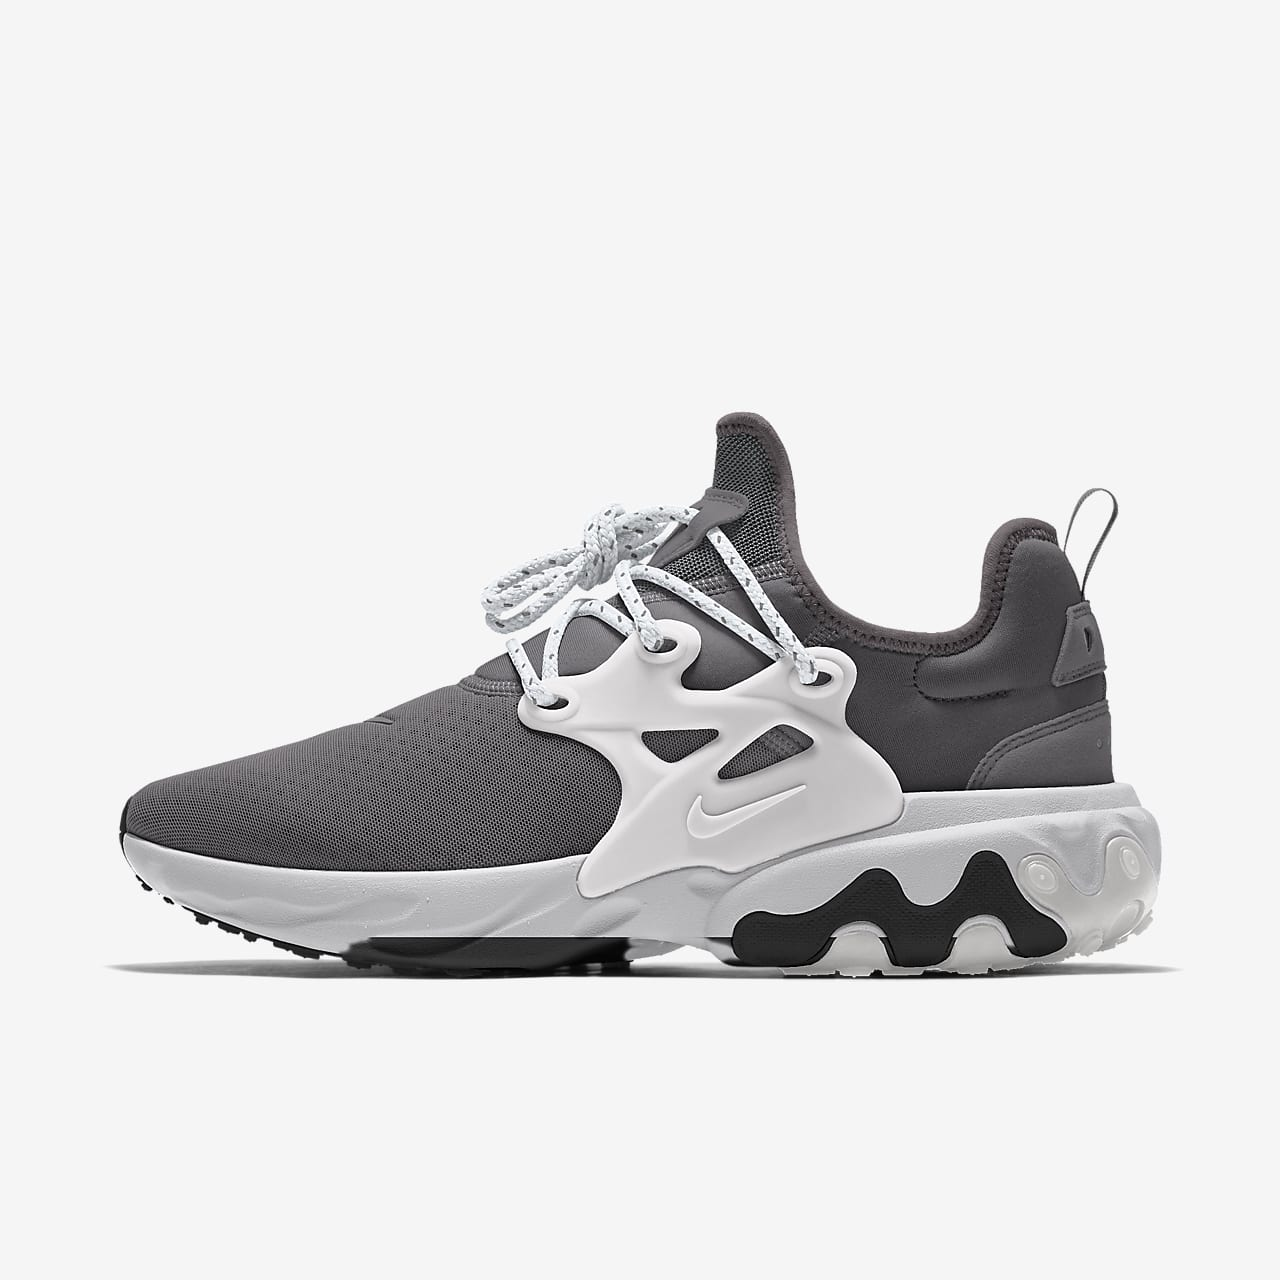 Chaussure personnalisable Nike React Presto By You pour Femme